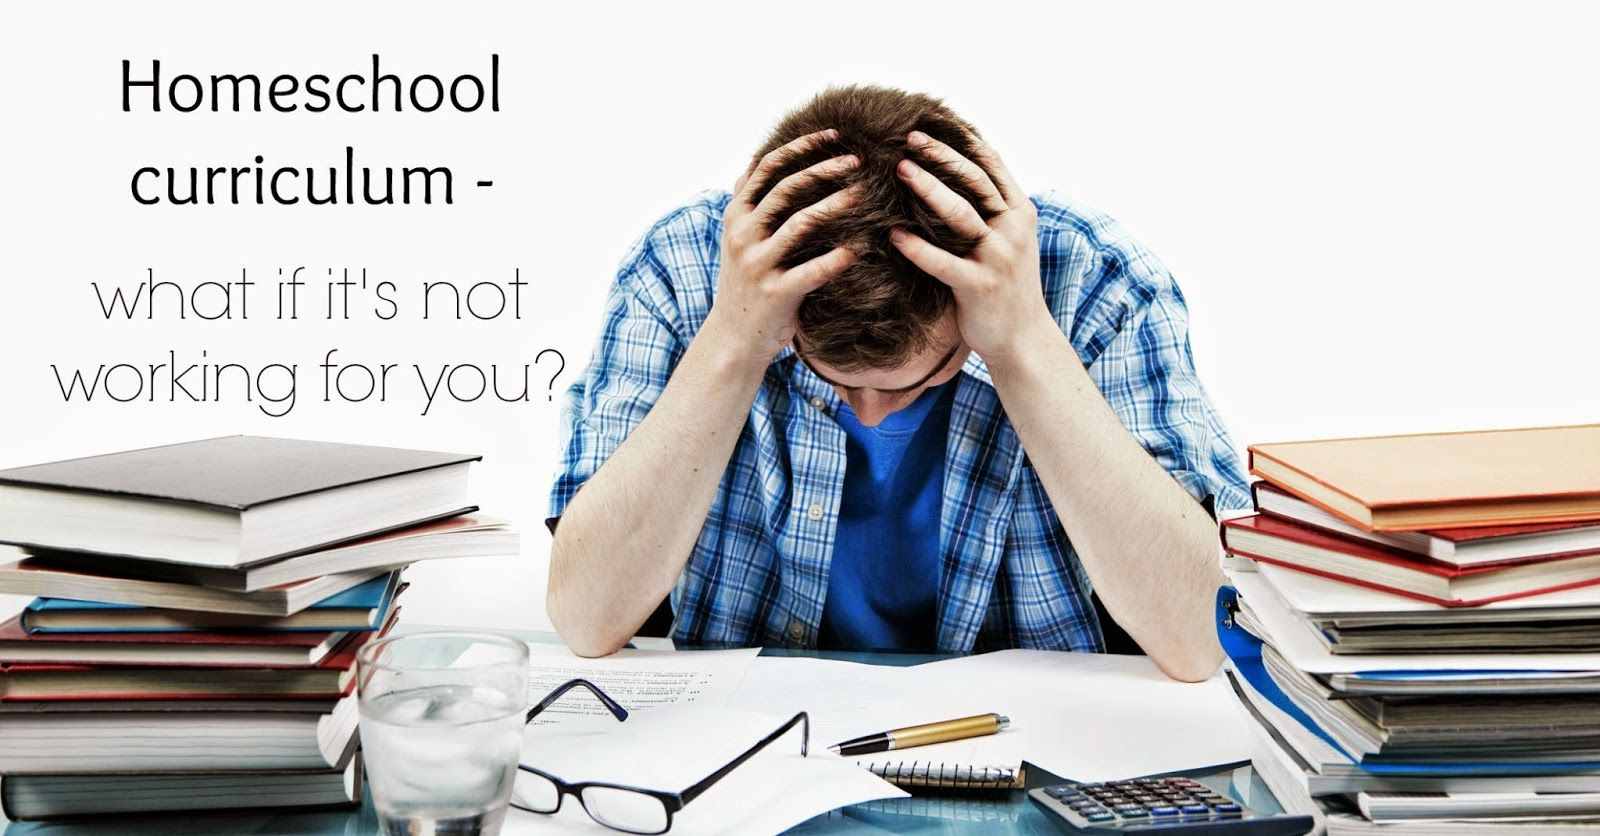 Homeschool curriculum - changing midstream. Can I do that?